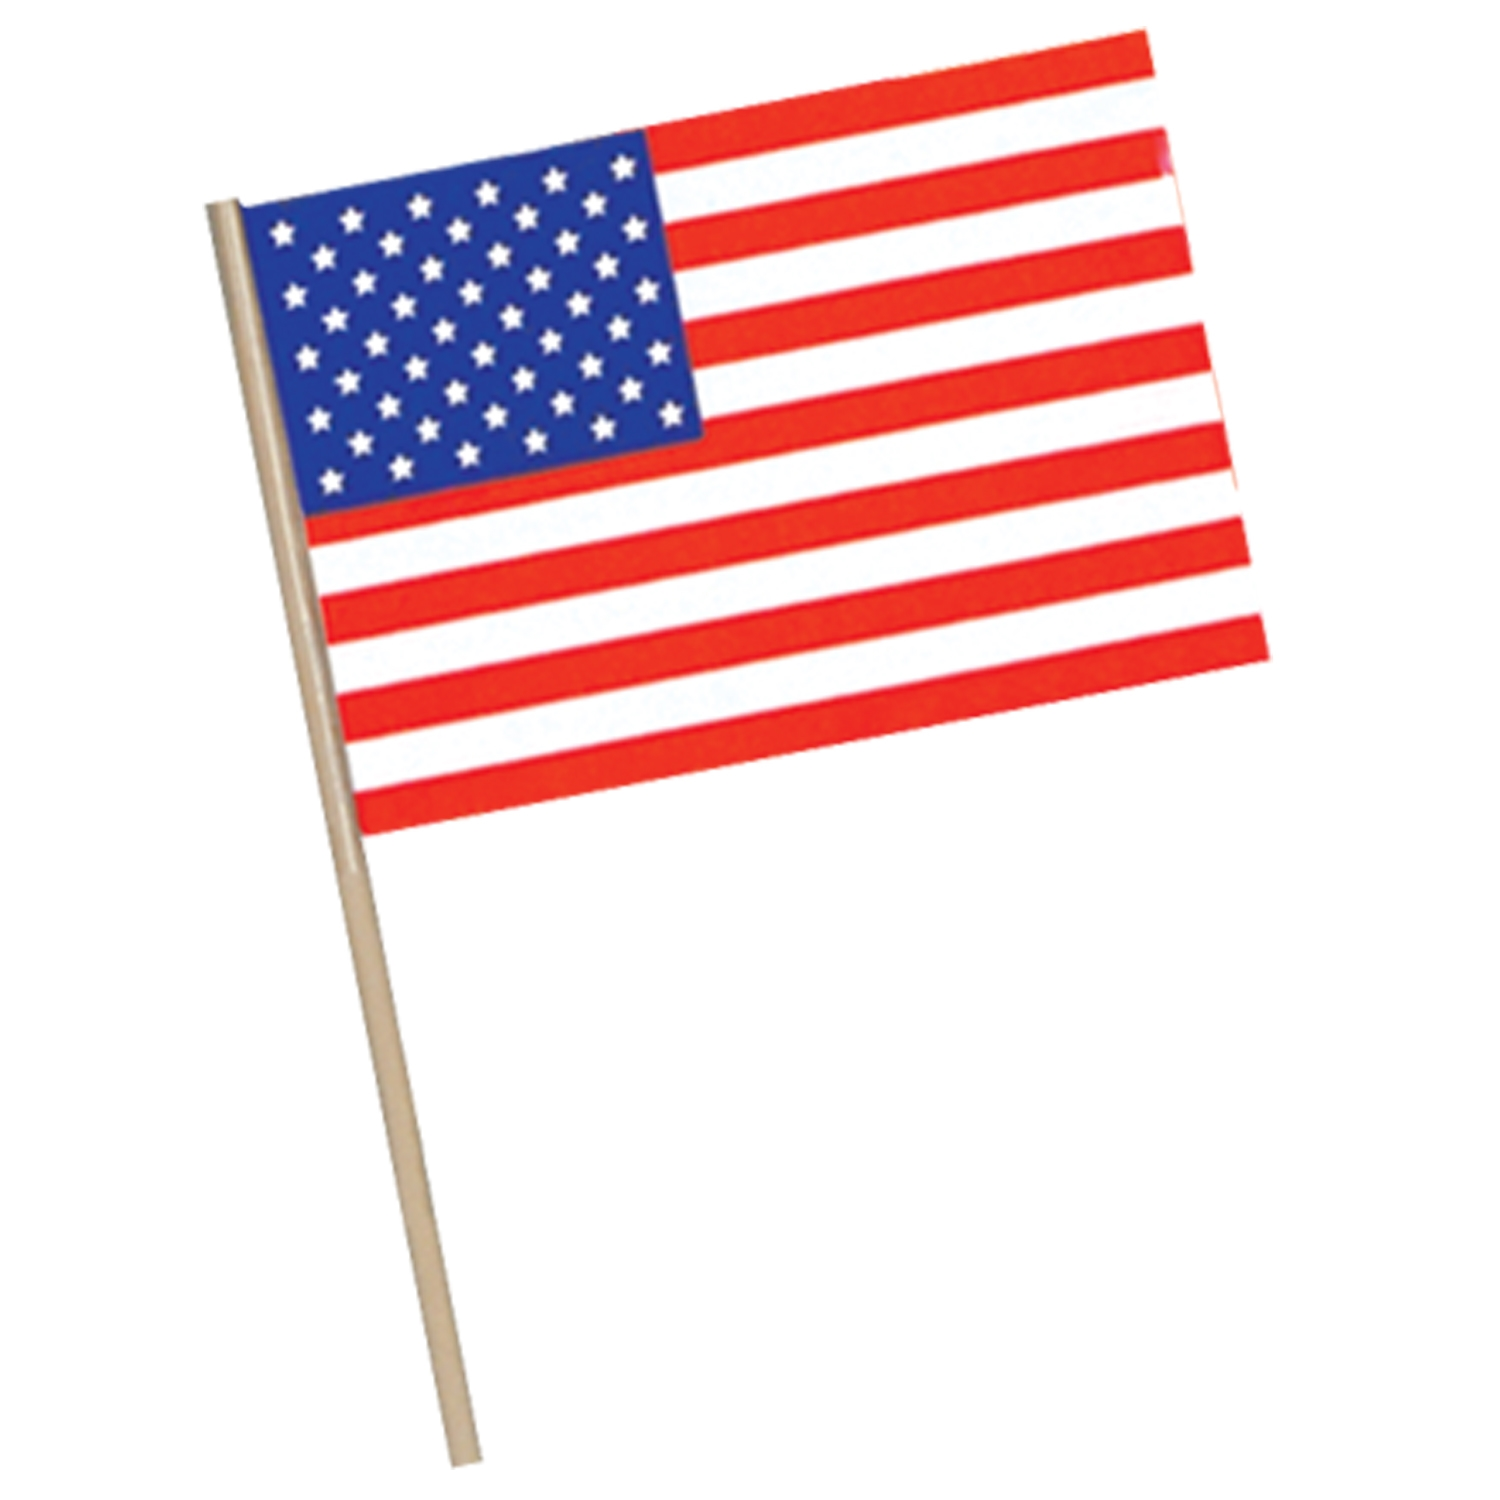 American Flag - Plastic (Pack of 144) American Flags, Flags, Patriotic Decor, Wholesale party supplies, Inexpensive party decorations, Fourth of July, Memorial Day, Labor Day